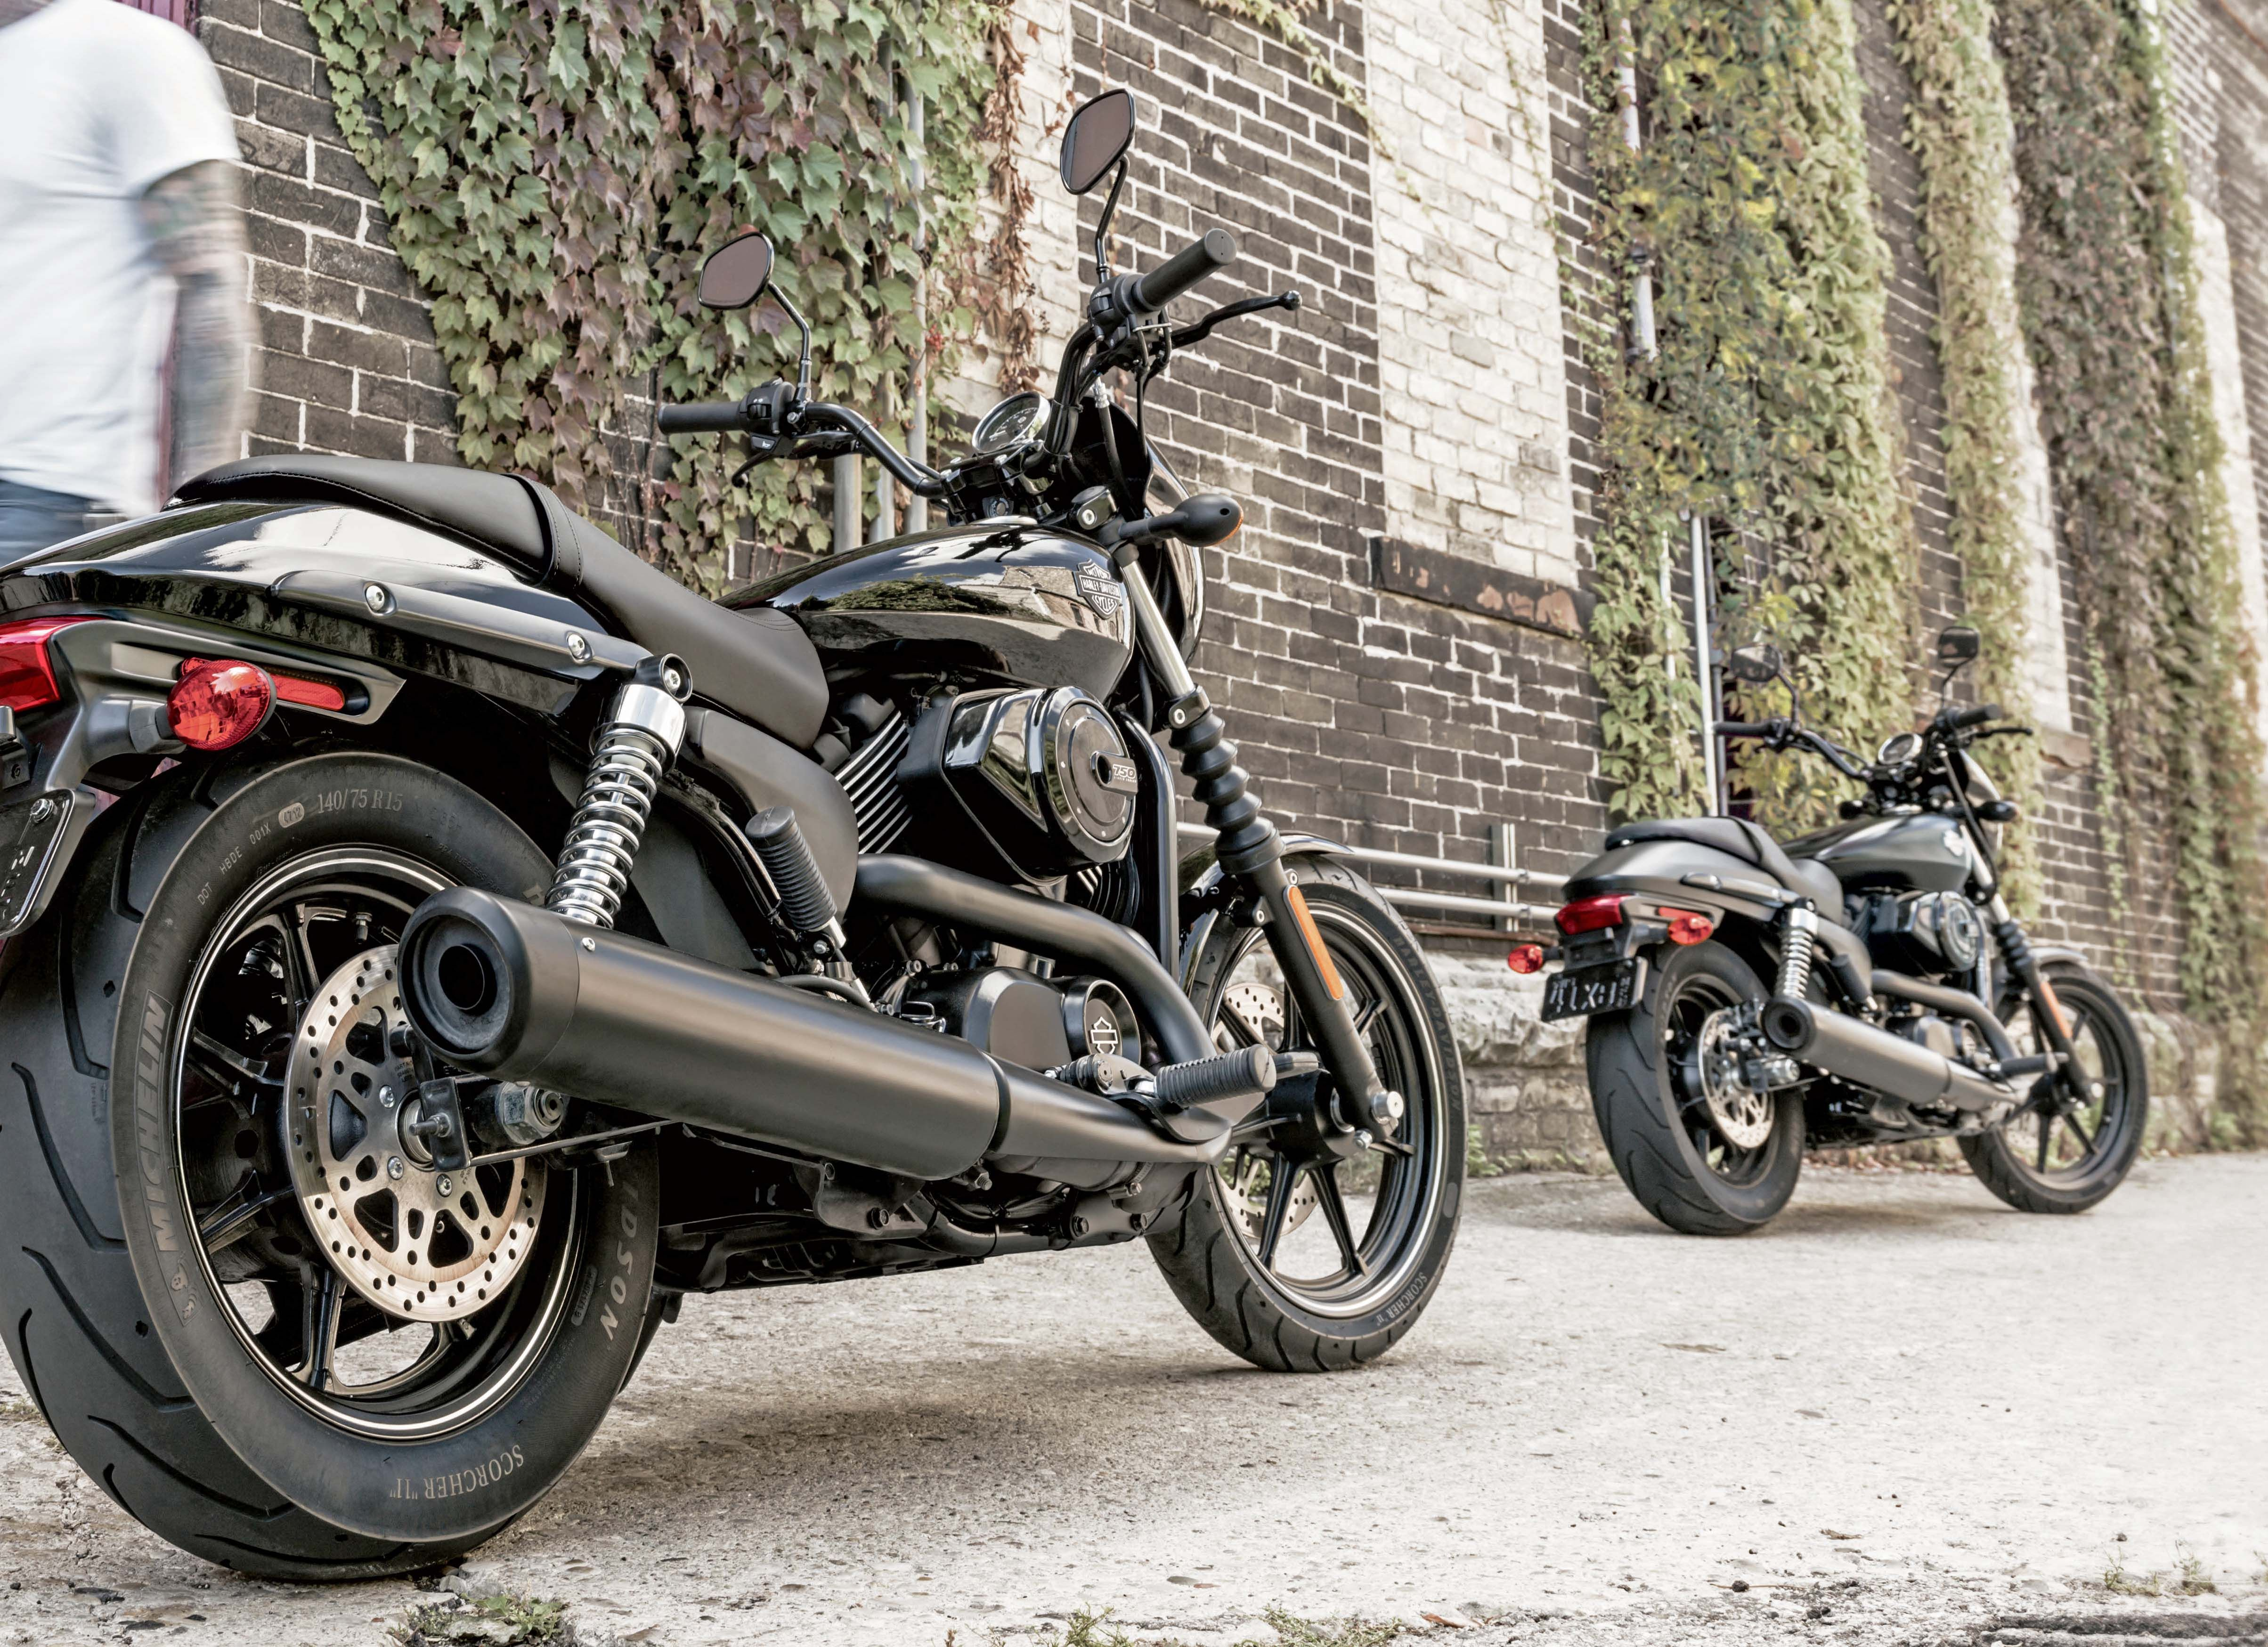 Harley davidson issues recall for street 500 and street 750 motorcyclefeed com pinterest harley davidson harley davidson street and car wallpapers